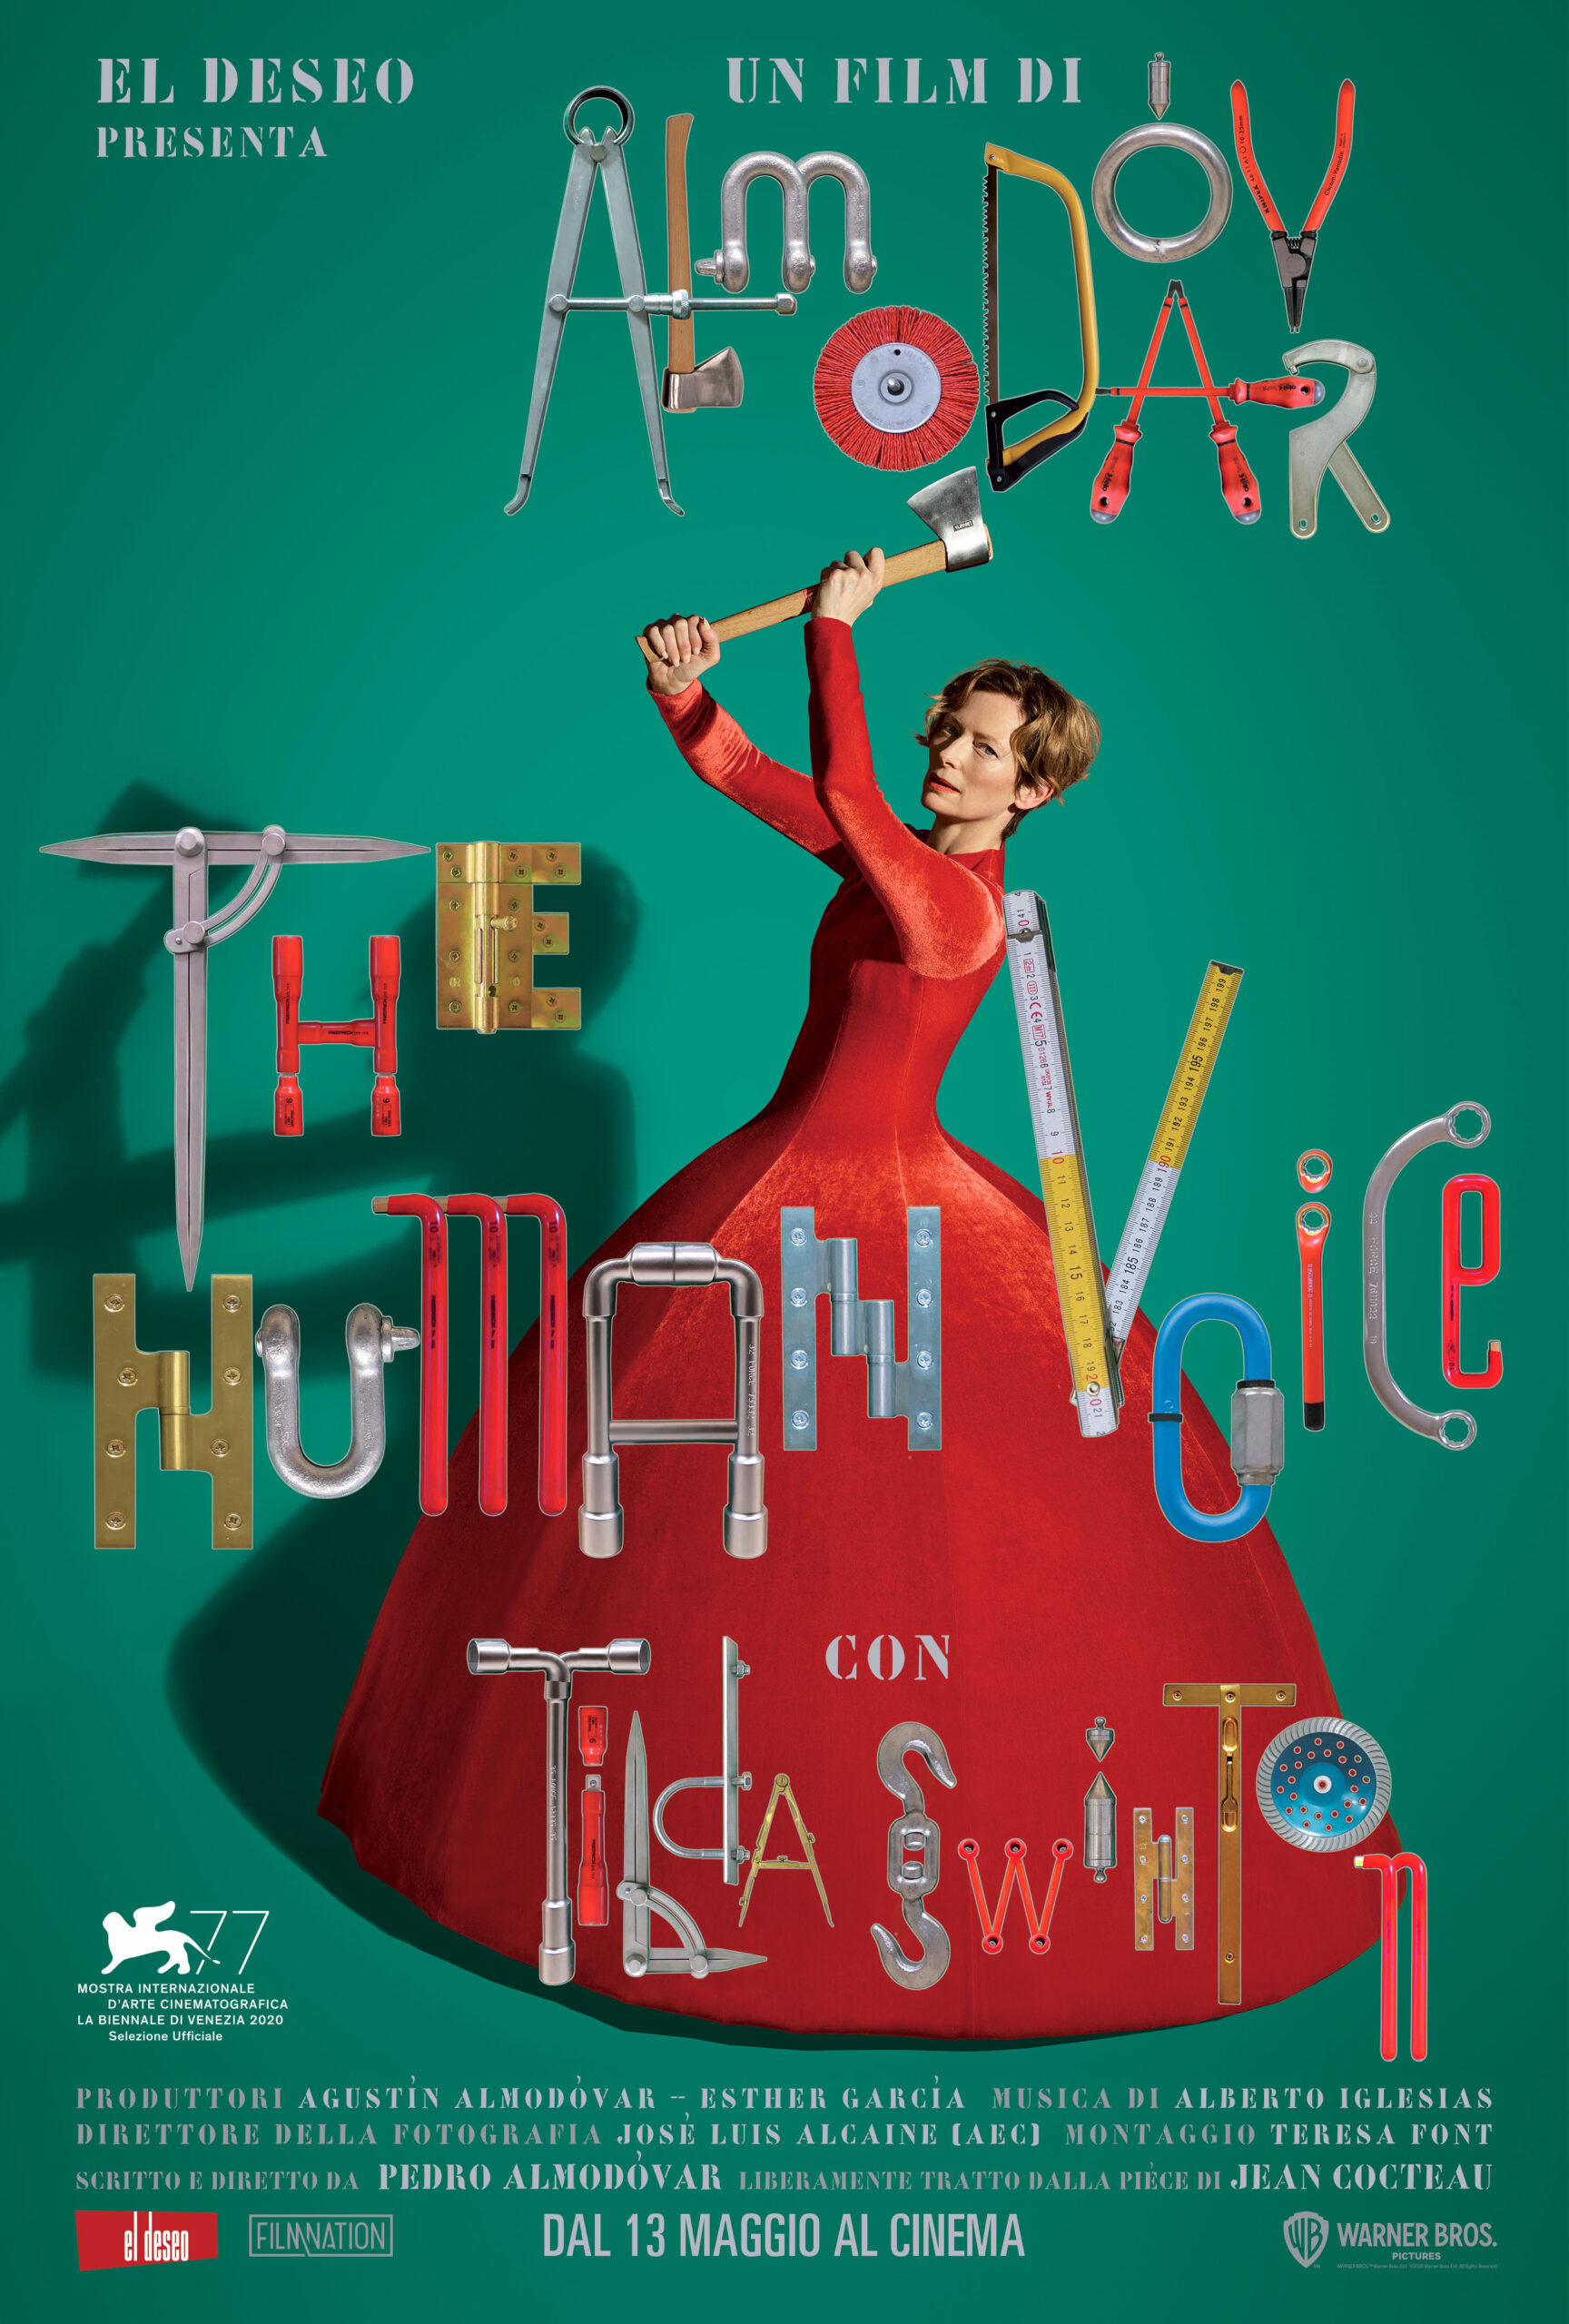 THE HUMAN VOICE